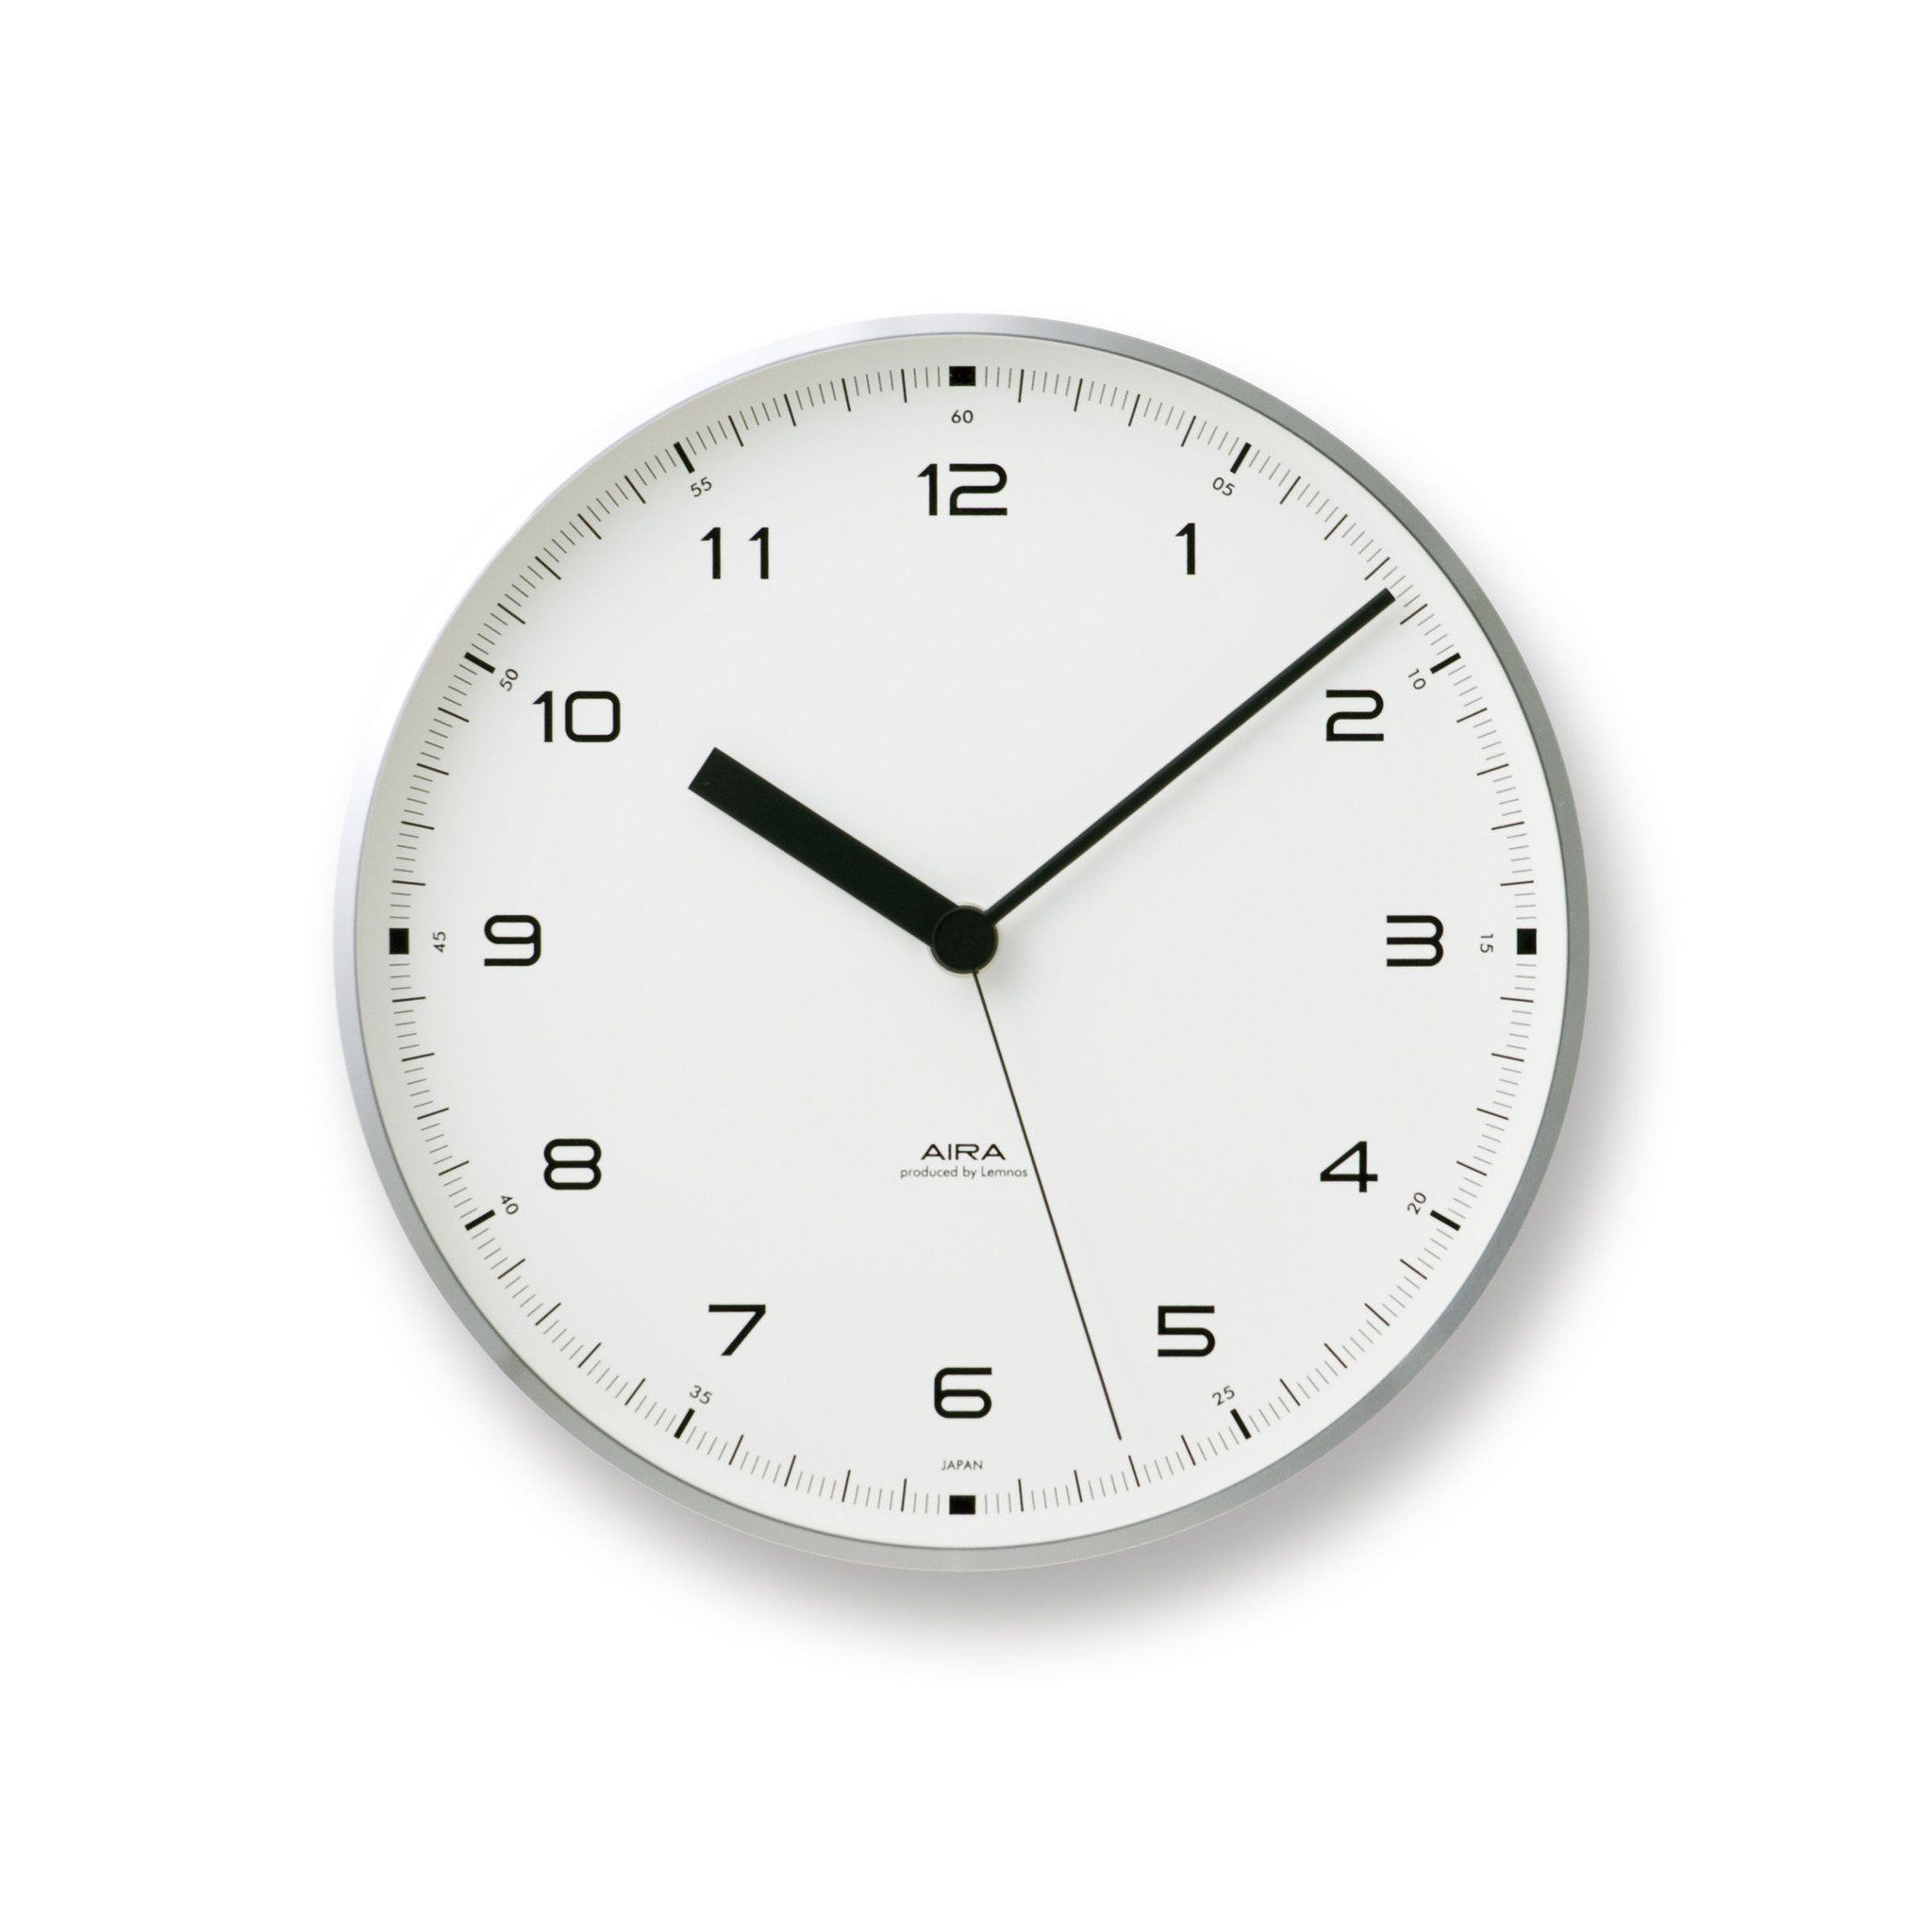 Urban wall clock in aluminum design by lemnos wall clocks urban wall clock in aluminum design by lemnos amipublicfo Images